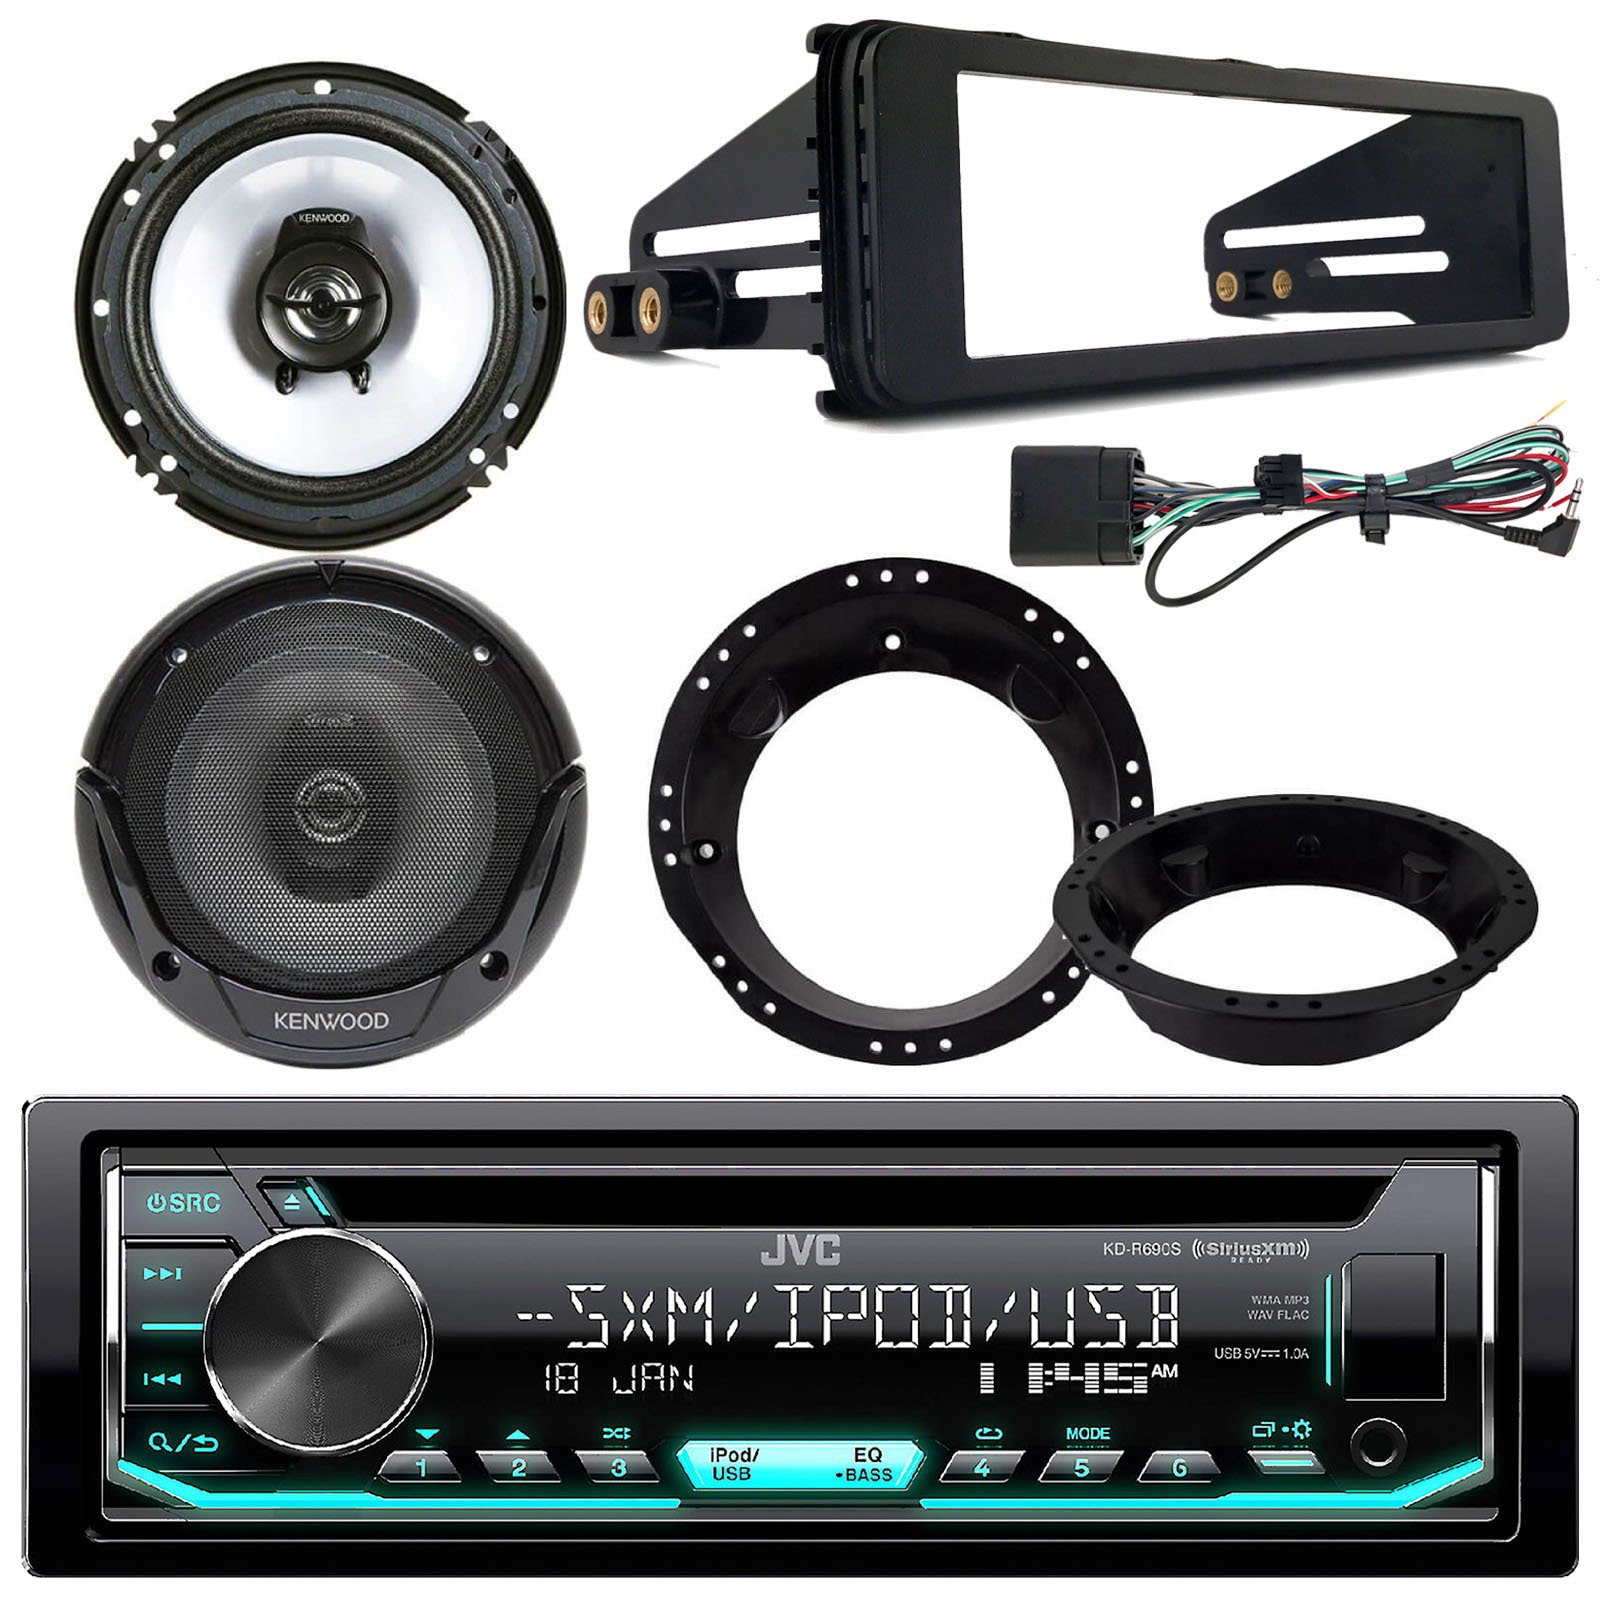 JVC KDR690S CD Stereo Audio Receiver - Bundle Combo with 2X Kenwood 6.5'' Inch Black Coaxial Speakers W/Adapter Brackets + Radio Dash Kit for 1998-2013 Harley Motorcycle Bikes by EnrockAudioBundle